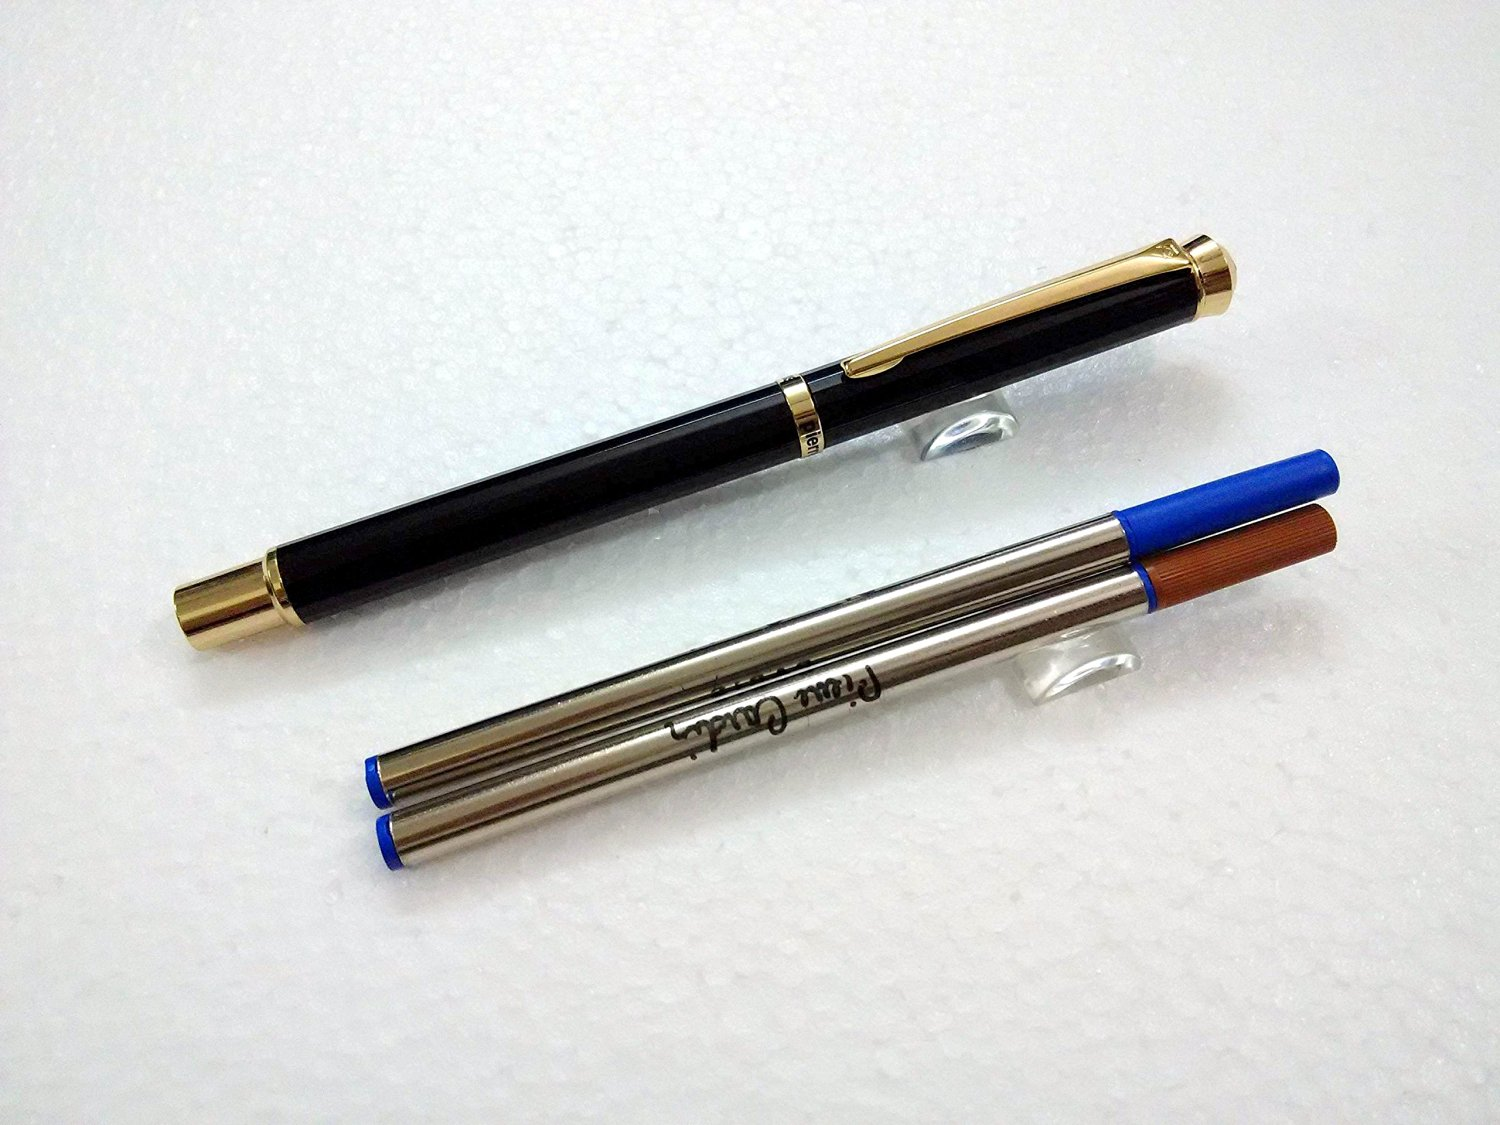 Pierre Cardin Cristal Black Chrome Finish Roller Ball Point Pen - Blue Ink + 1 Extra Black Roller Ball Pen Refill. Crystal on Top - Color Varies Depending on Stock Availability